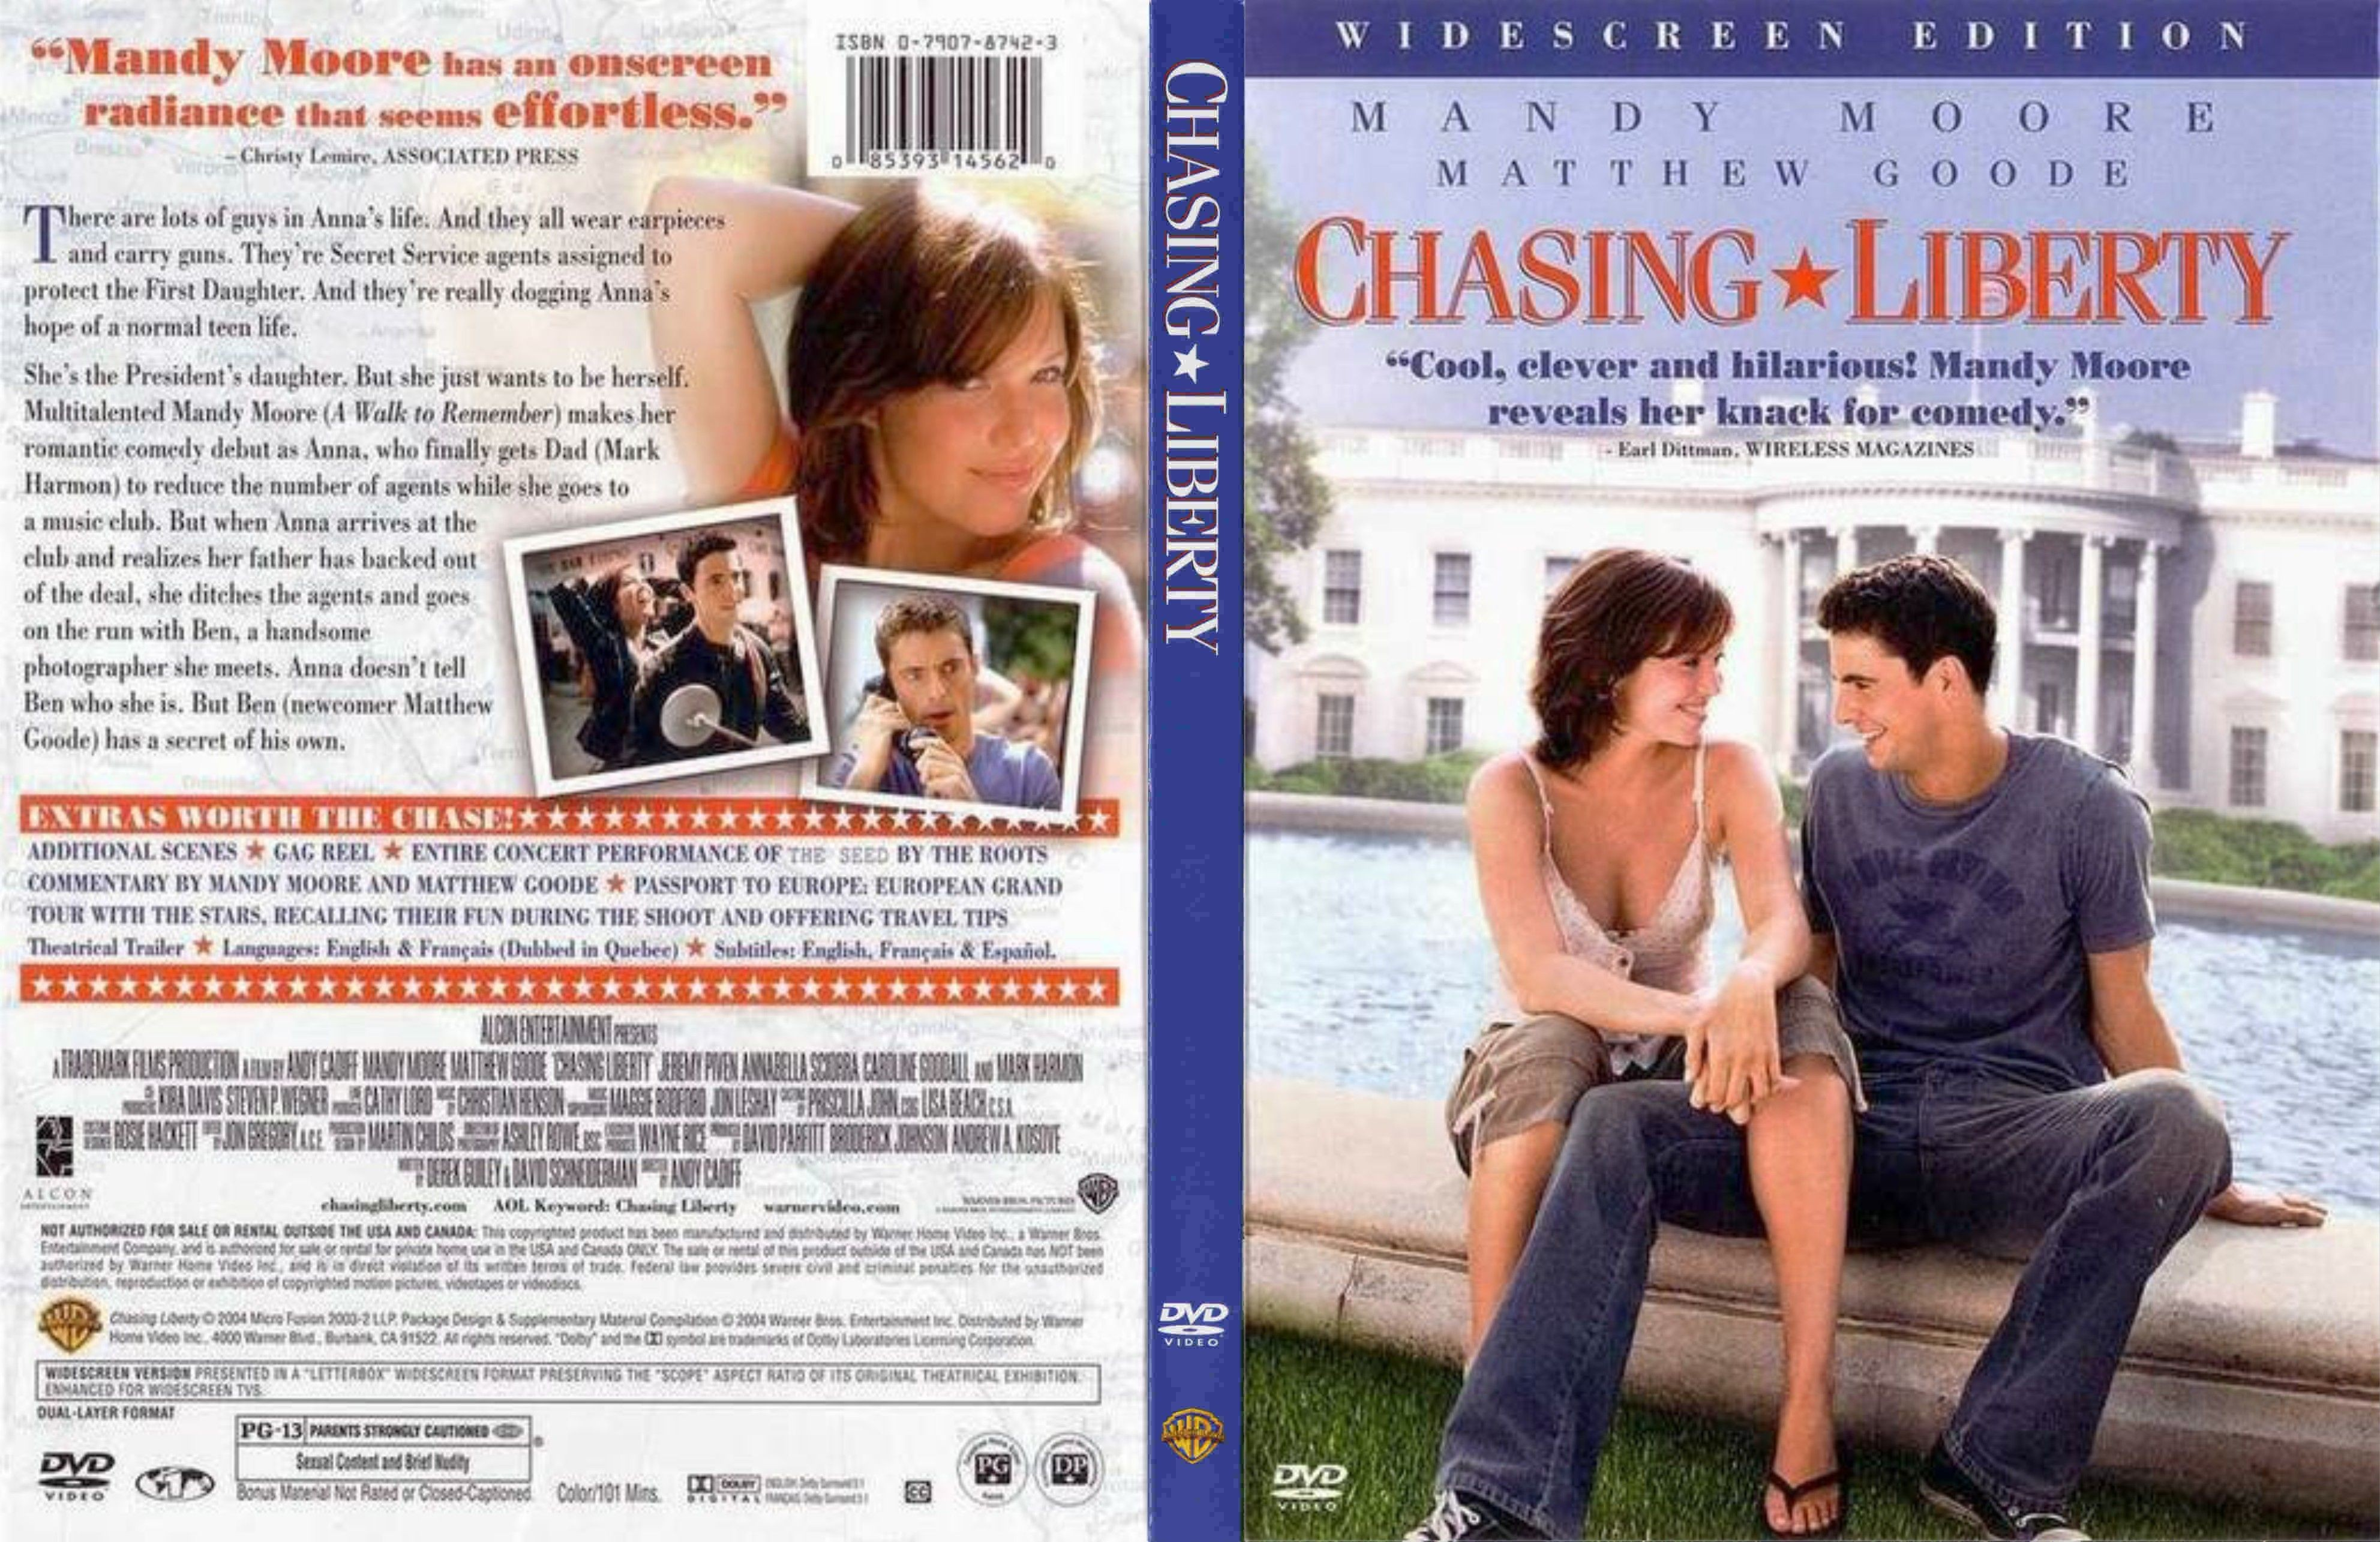 chasing liberty movie torrent download